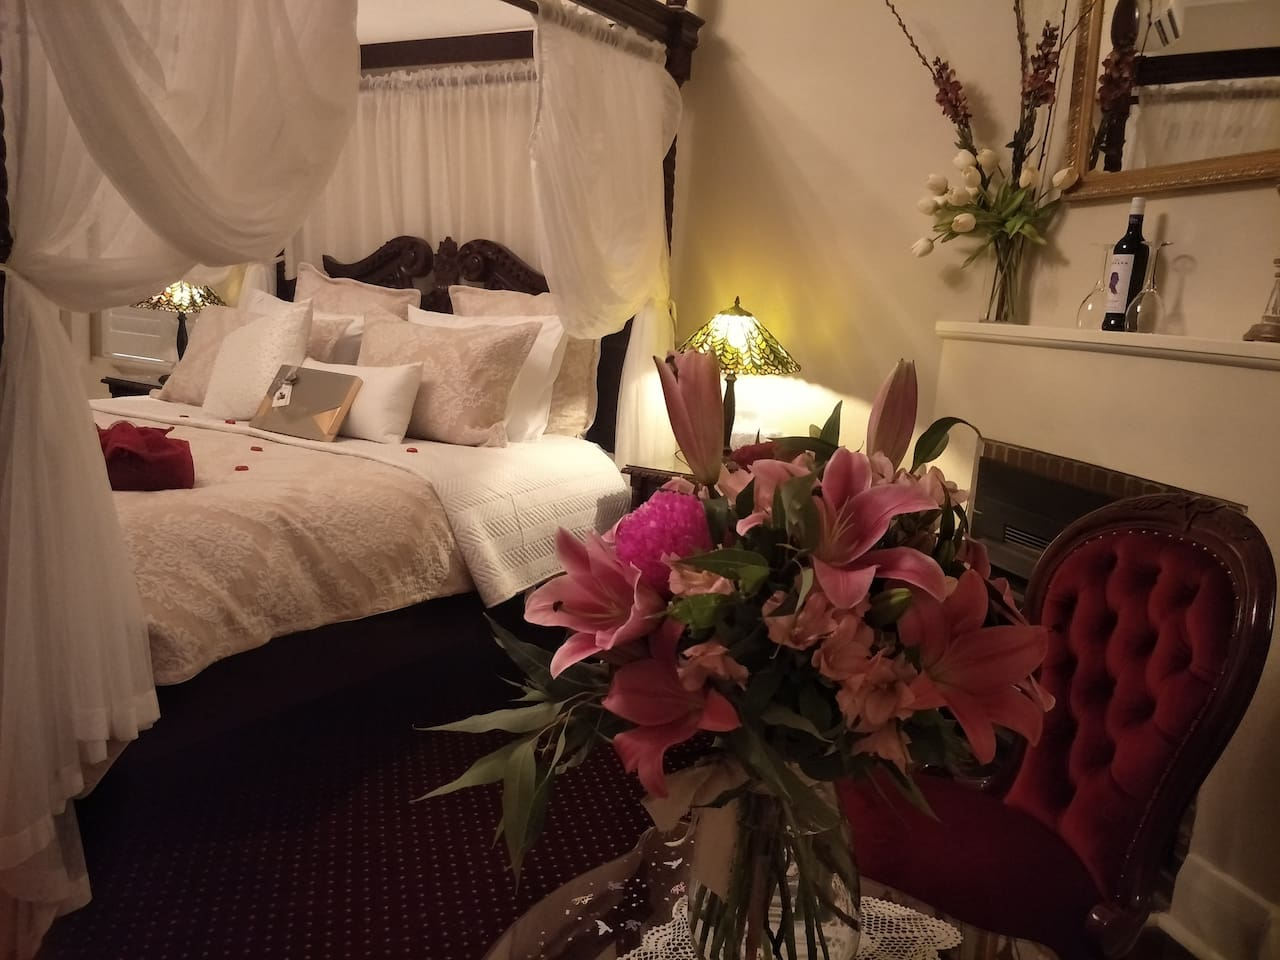 The perfect room for a special occasion, wedding, anniversary, birthday. We can provide the extras to celebrate a special occasion. A delightful king sized bed with mahogany furniture.